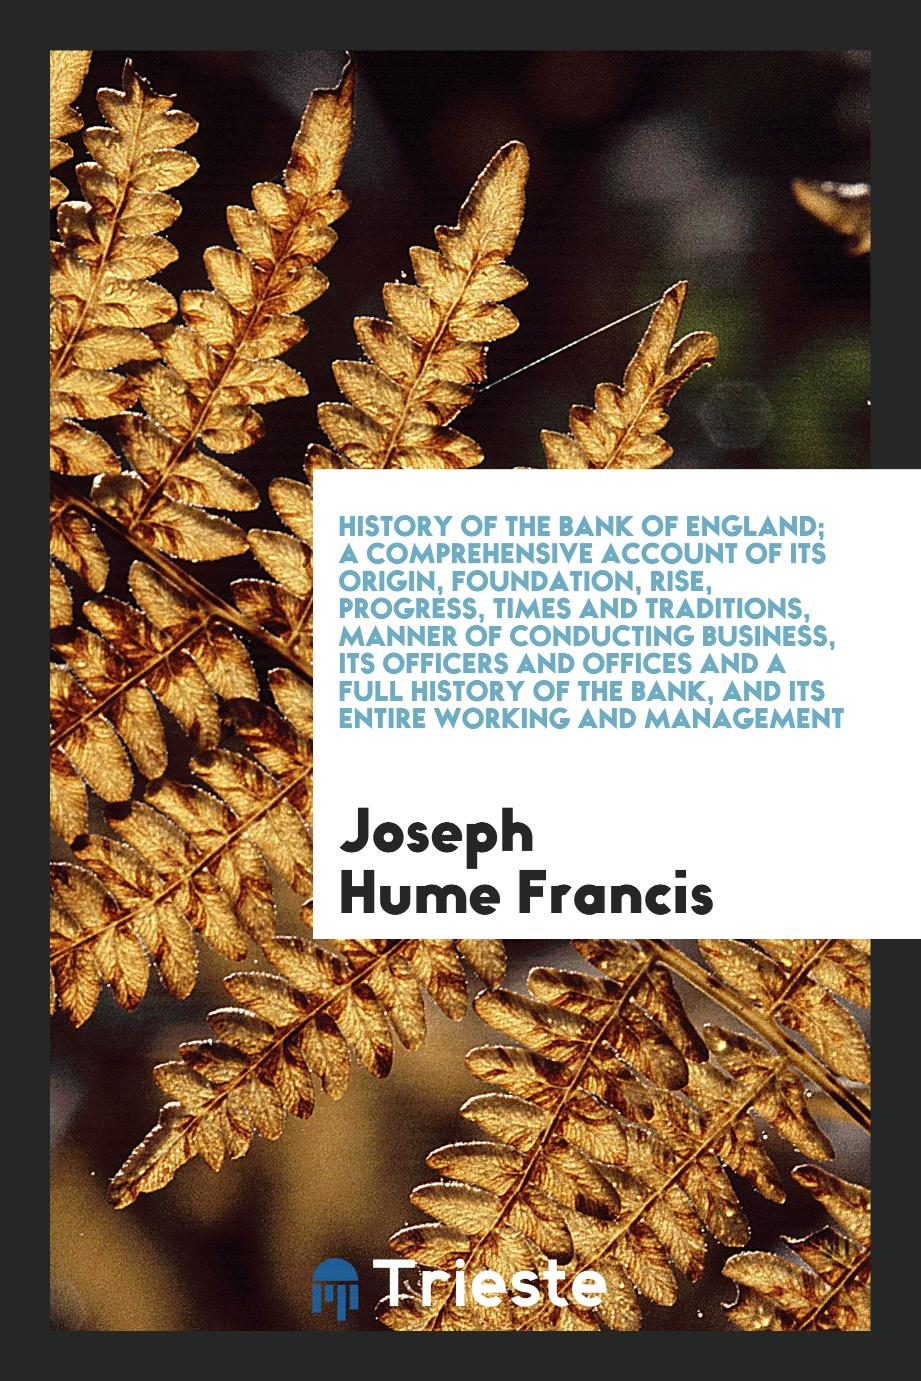 History of the Bank of England; A Comprehensive Account of Its Origin, Foundation, Rise, Progress, Times and Traditions, Manner of Conducting Business, Its Officers and Offices and a Full History of the Bank, and Its Entire Working and Management